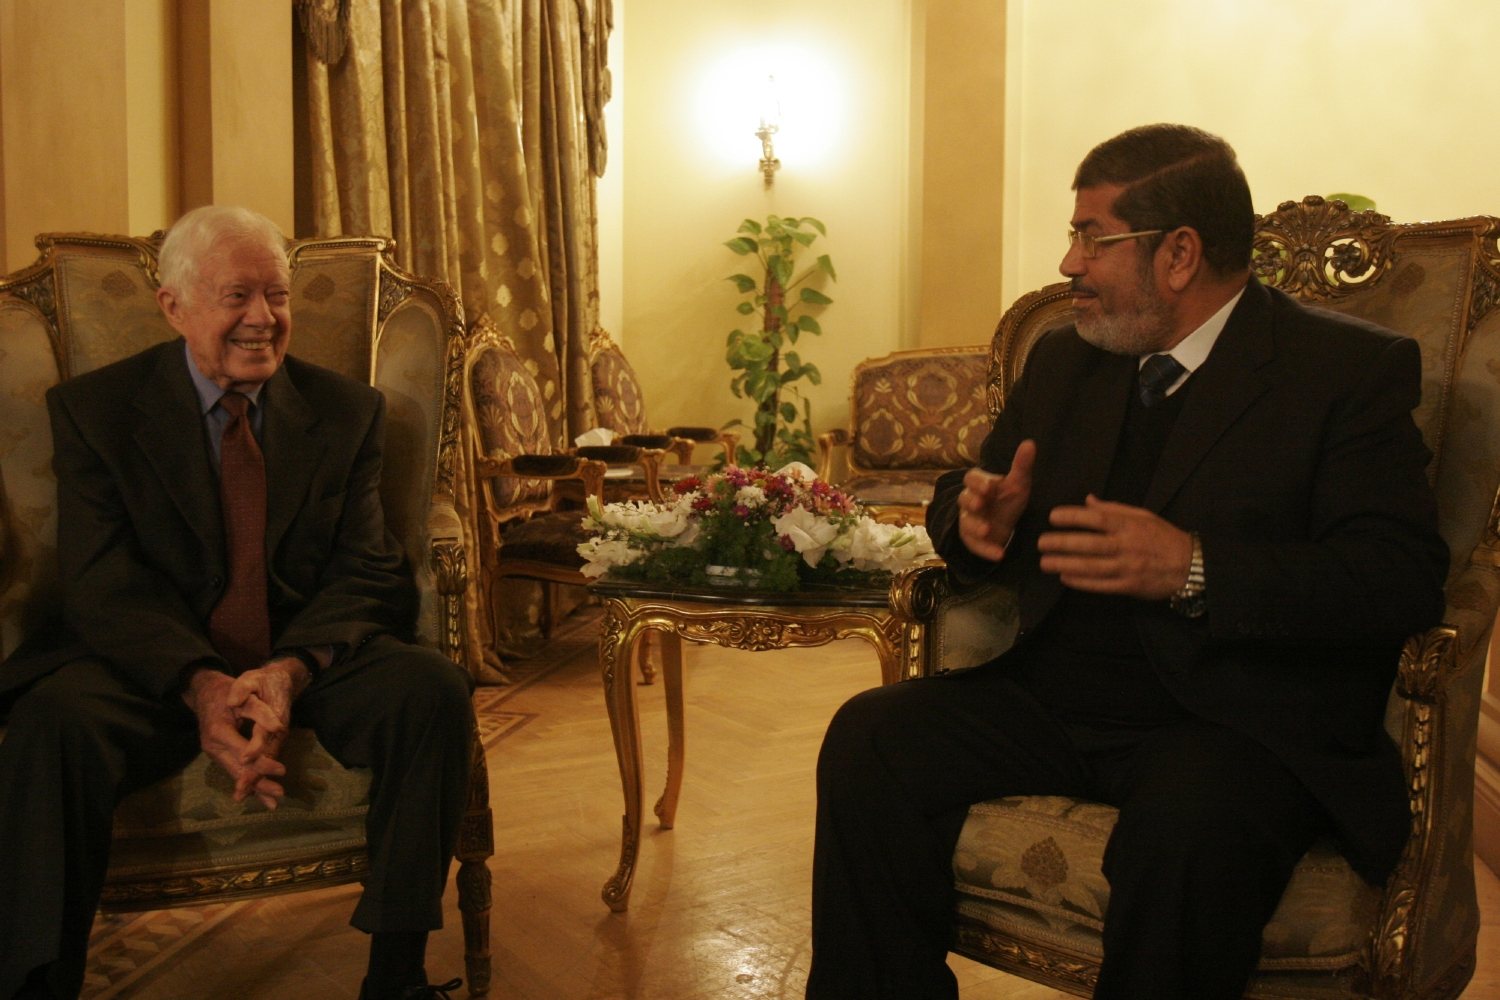 Carter asks U.S. to support Islamic rule in Egypt